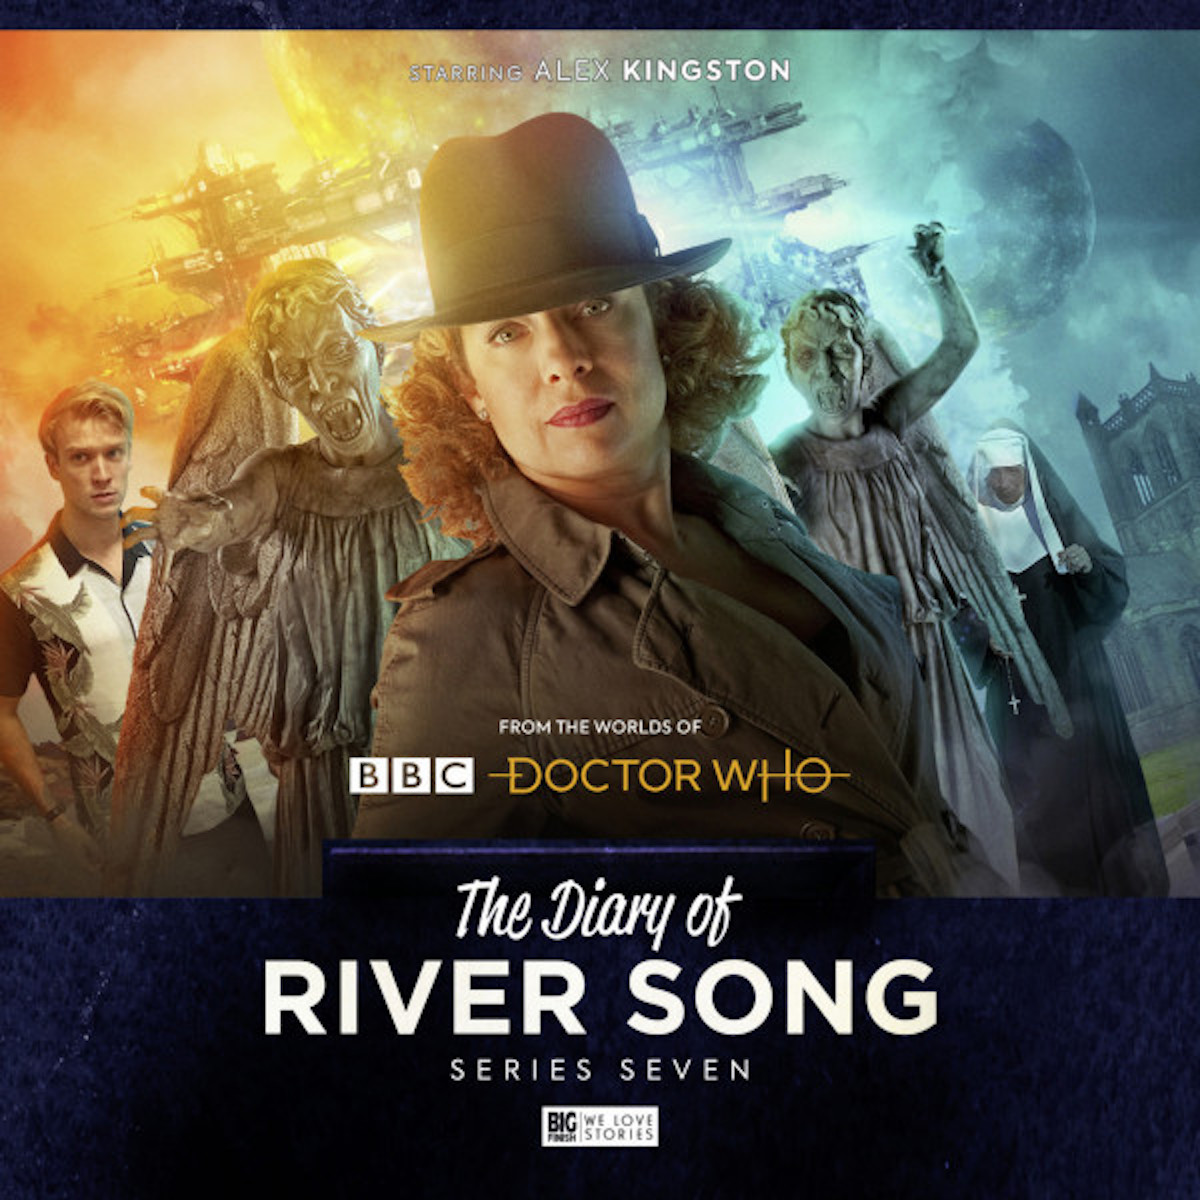 The Diary of River Song Volume 7